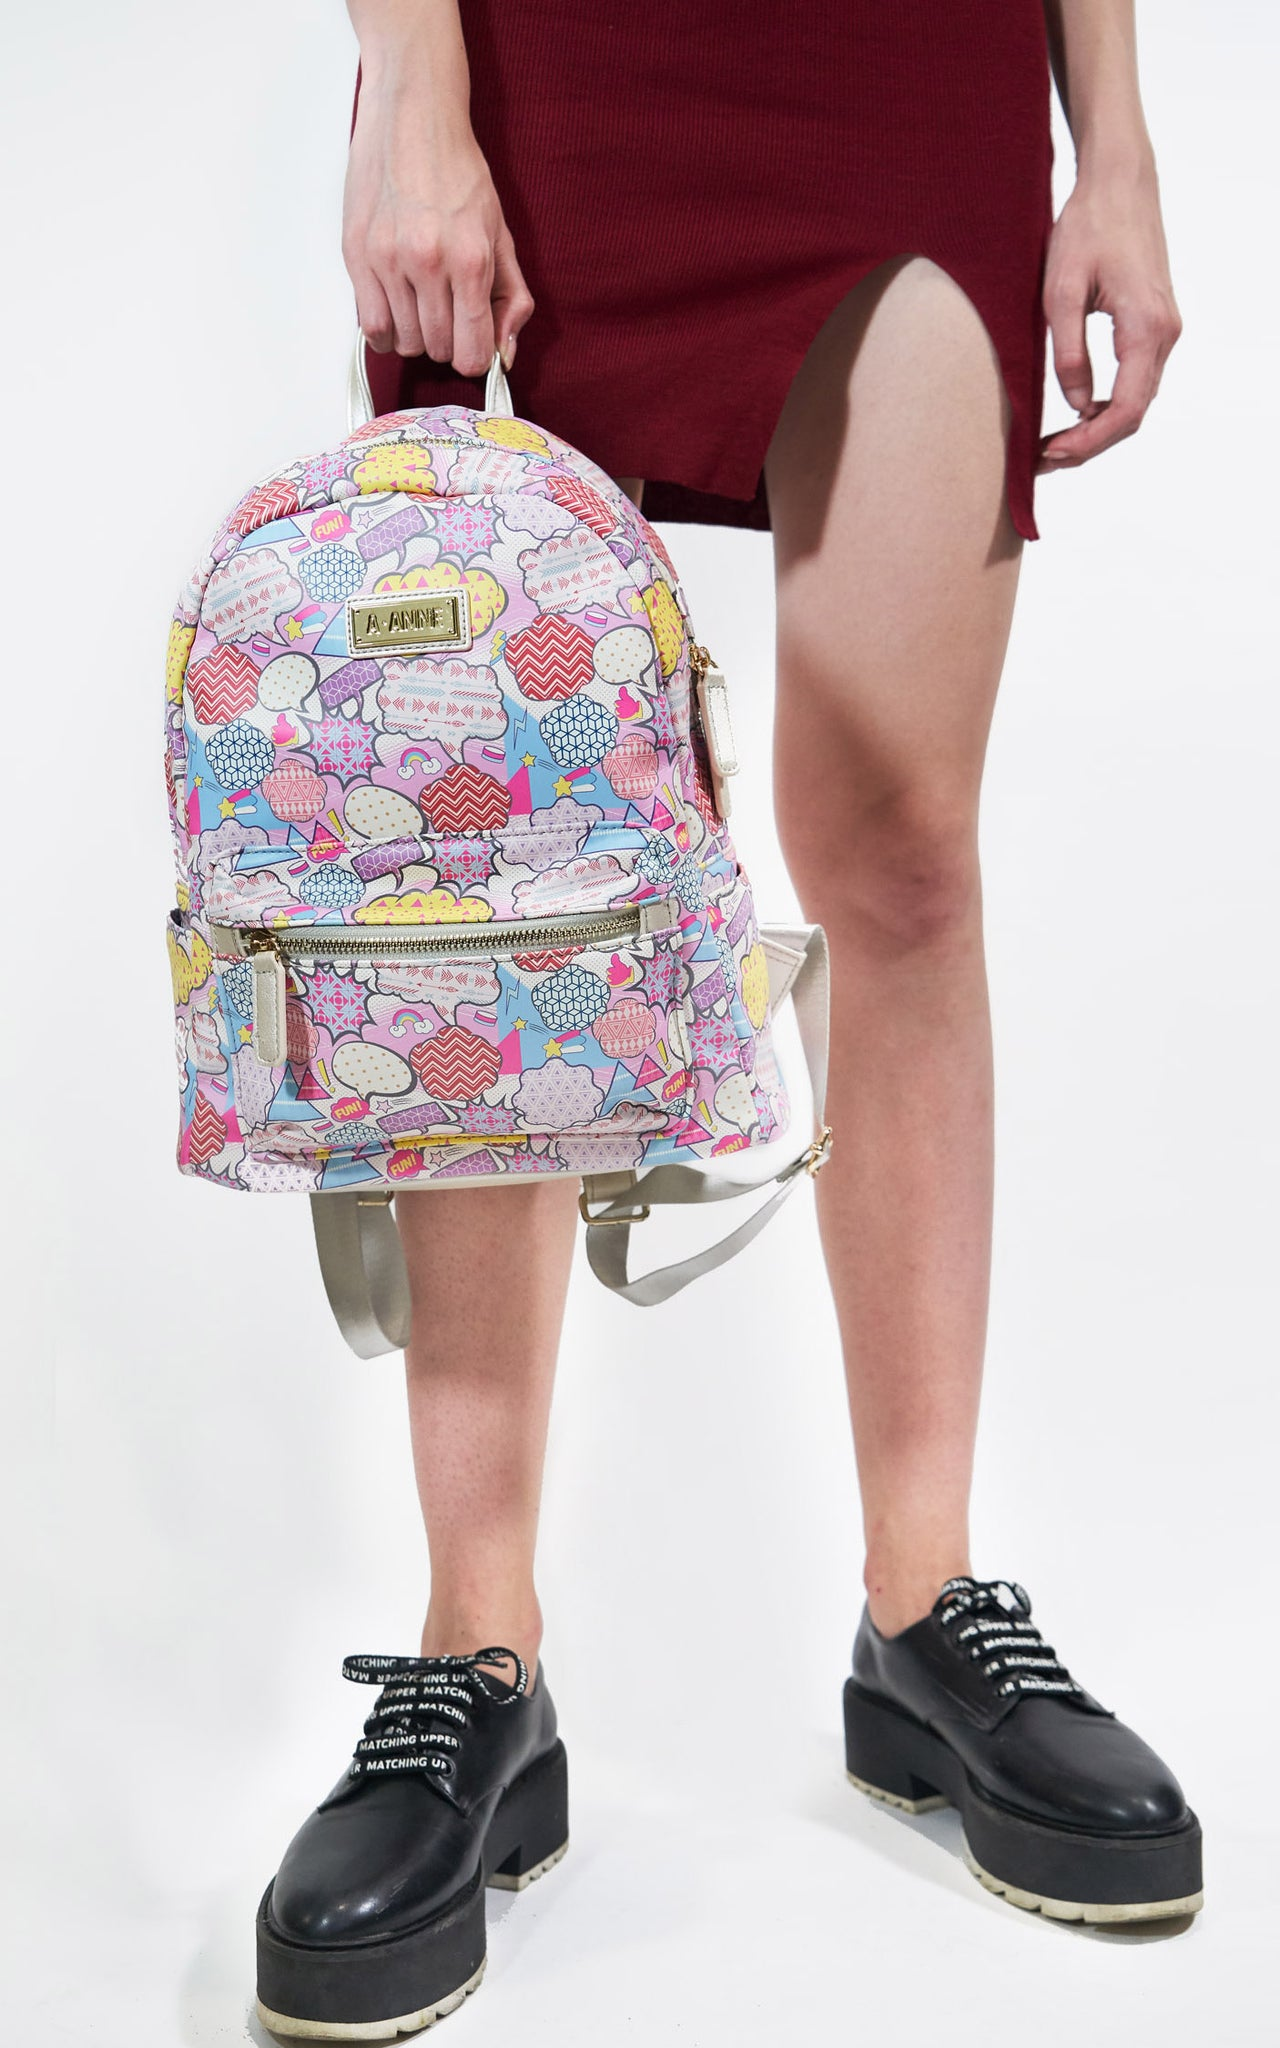 Femme Stories Backpack - A.Anne, Tokidoki, Ashlyn Anne, Fashion, Handbags, School, Bag, Accessories